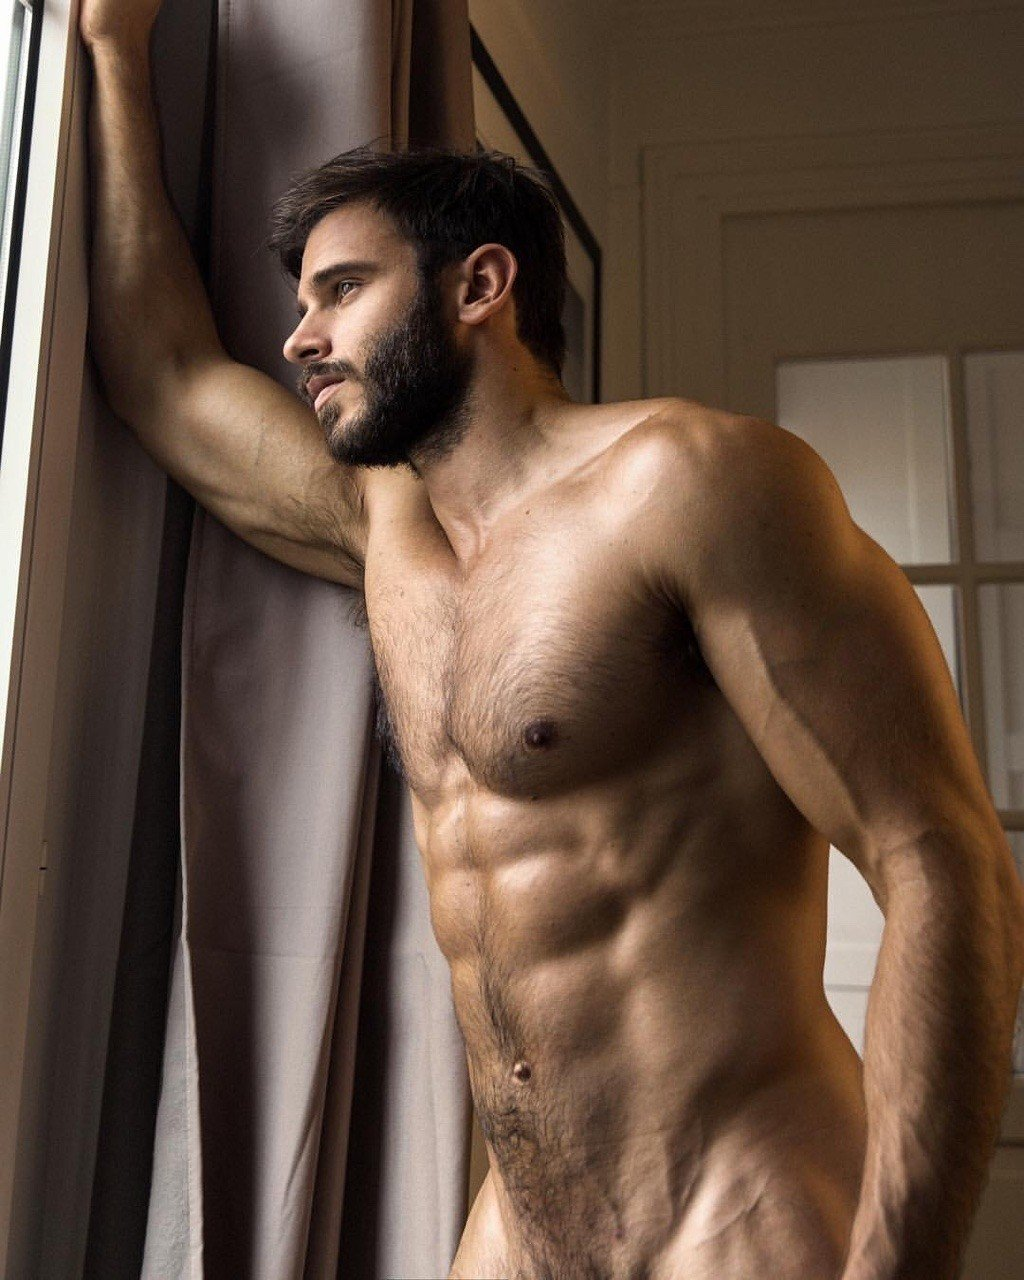 Very handsome men nude — photo 2